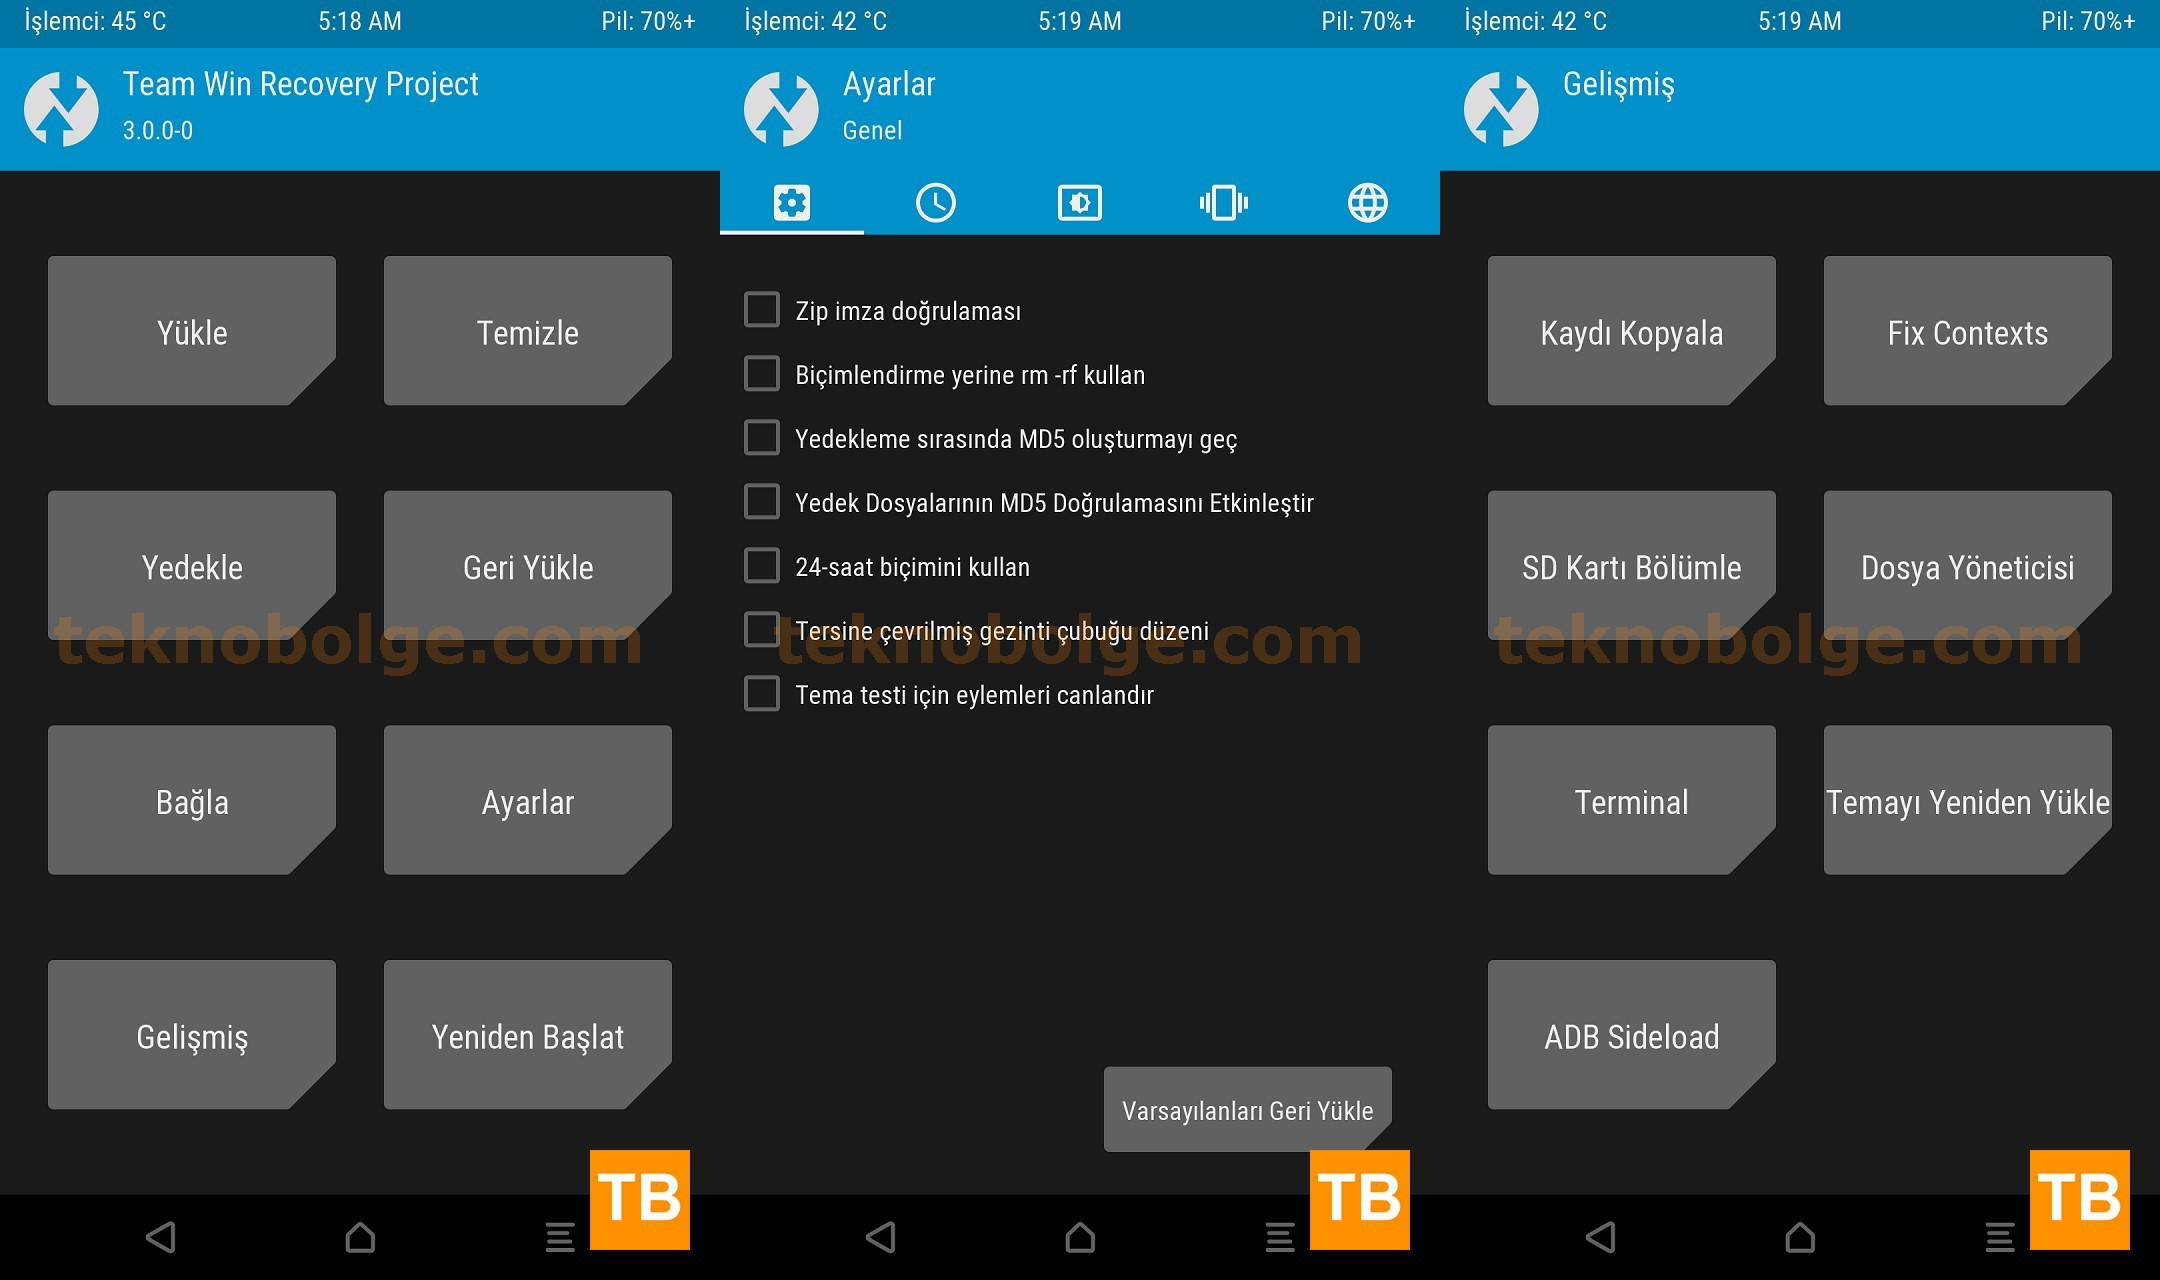 TWRP Recovery 3.0.0